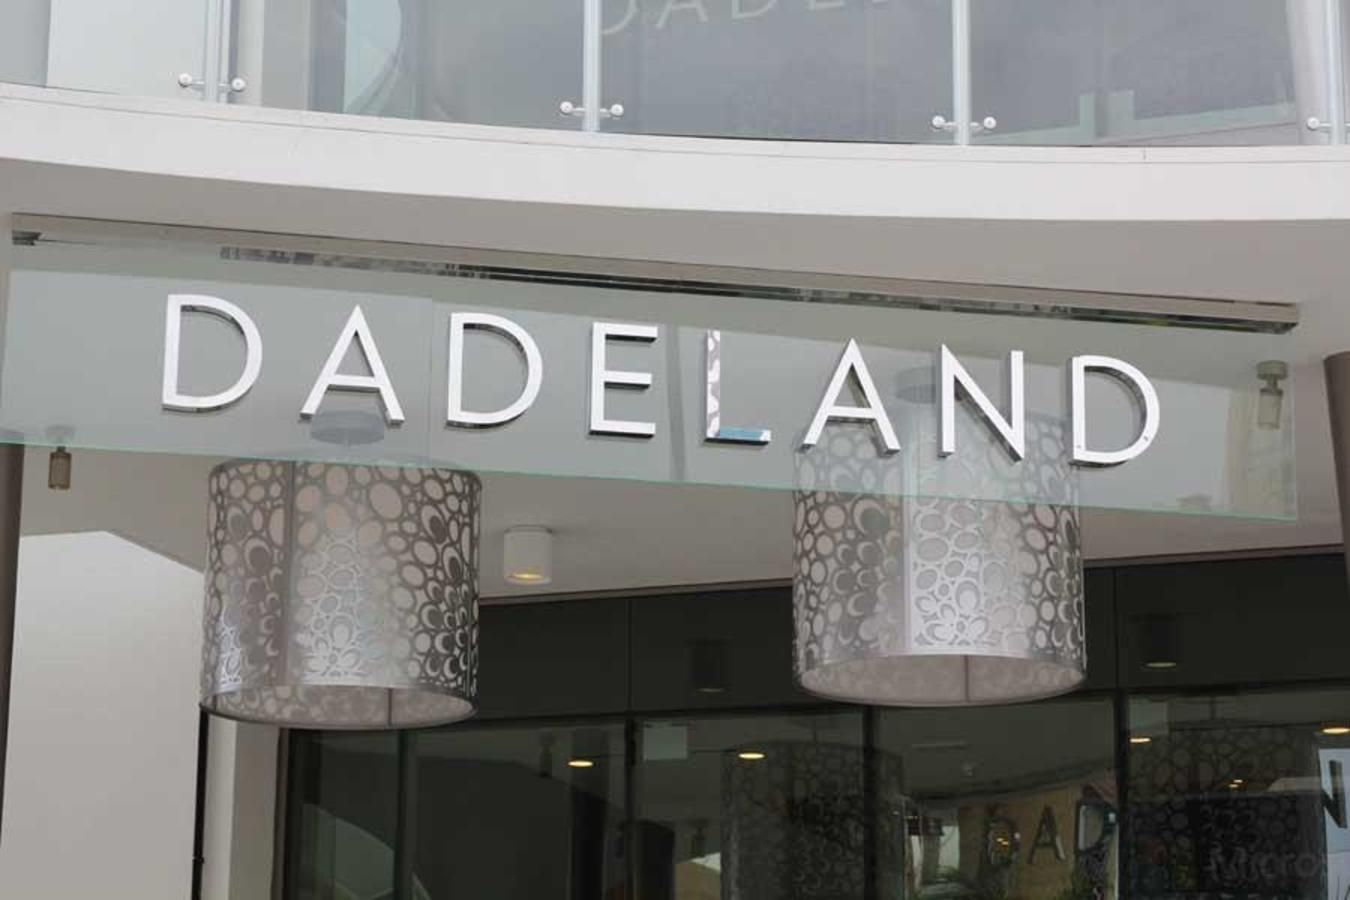 Welcome to Dadeland Mall